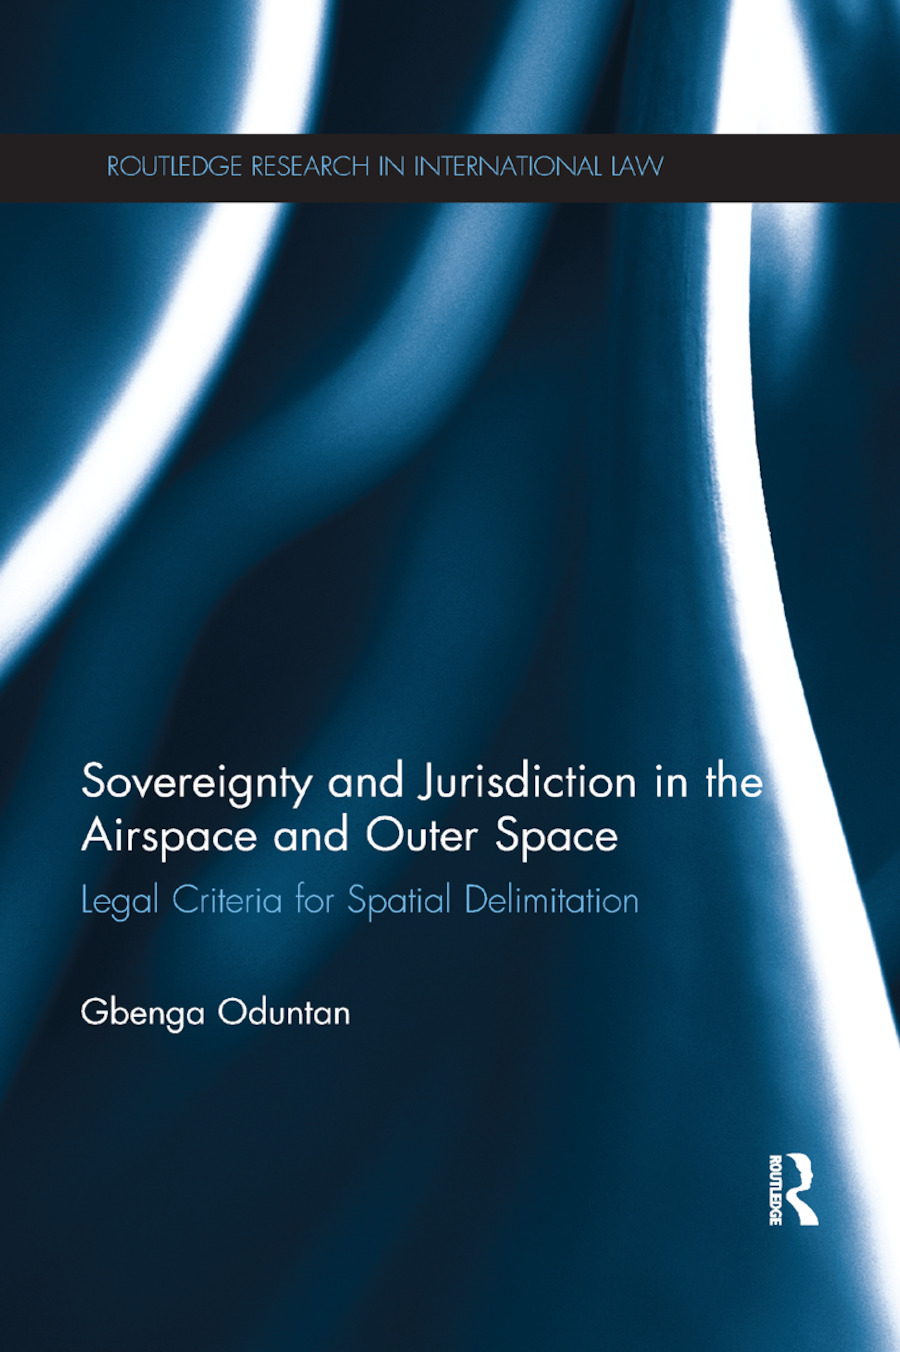 Sovereignty and Jurisdiction in Airspace and Outer Space: Legal Criteria for Spatial Delimitation book cover